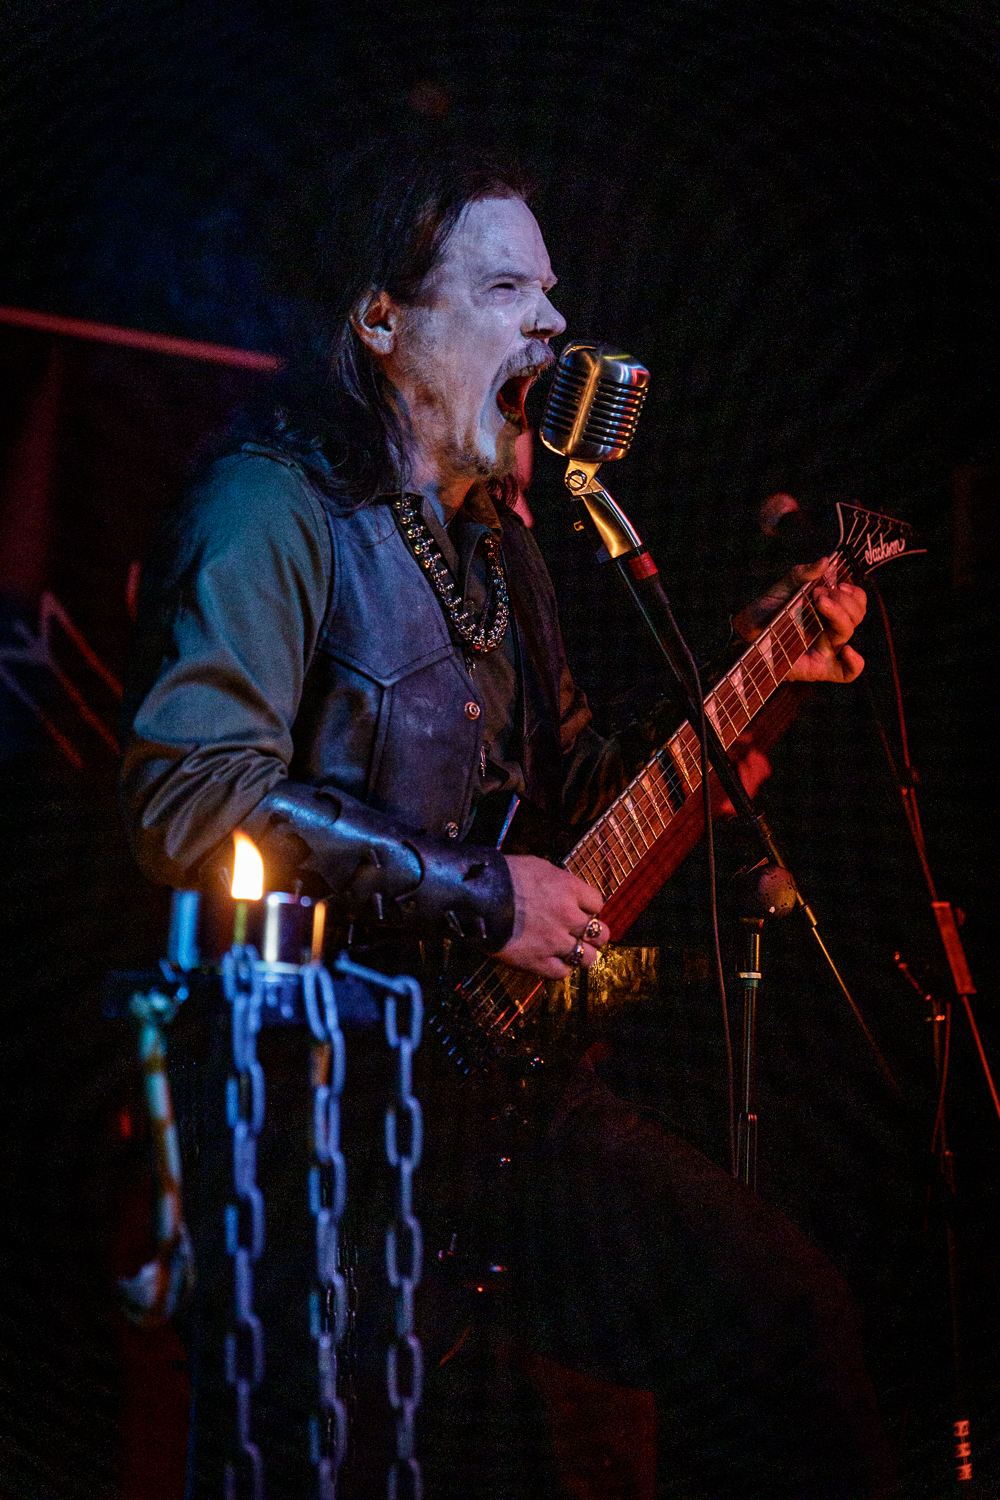 Grá_Star_and_Garter_Manchester_December_16th_2018_©Johann_Wierzbicki| ROCKFLESH-7.jpg